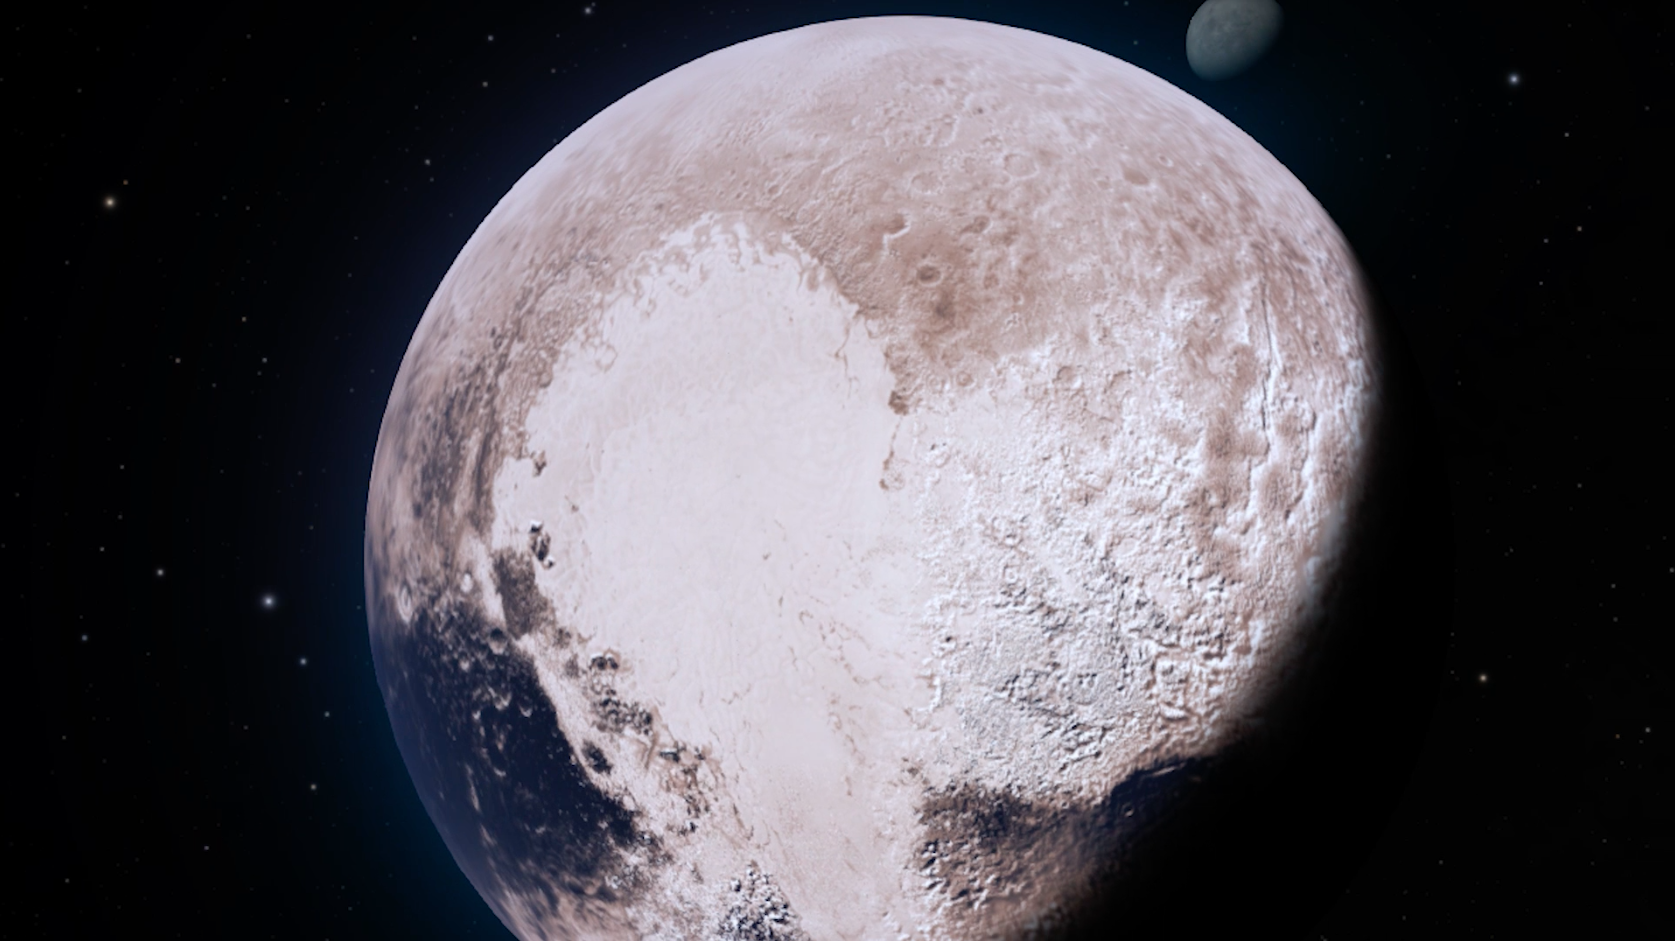 Exploring Pluto and the Kuiper Belt thumbnail